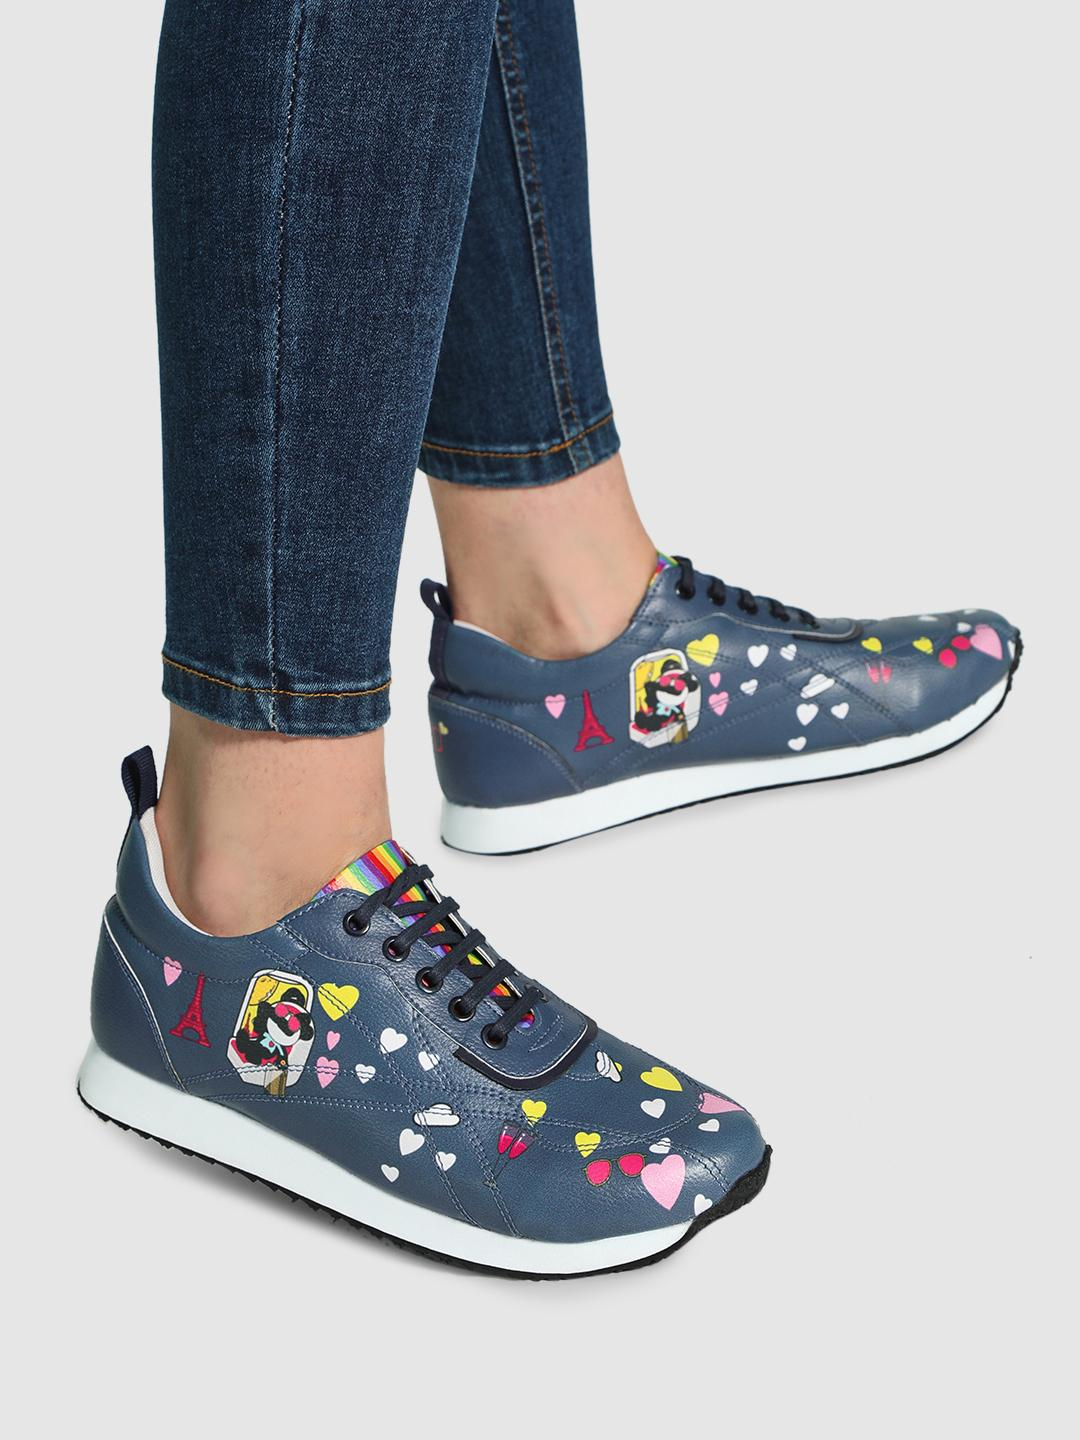 Manish Arora Paris X KOOVS Navy Tuzki Heart Print Trainers 1